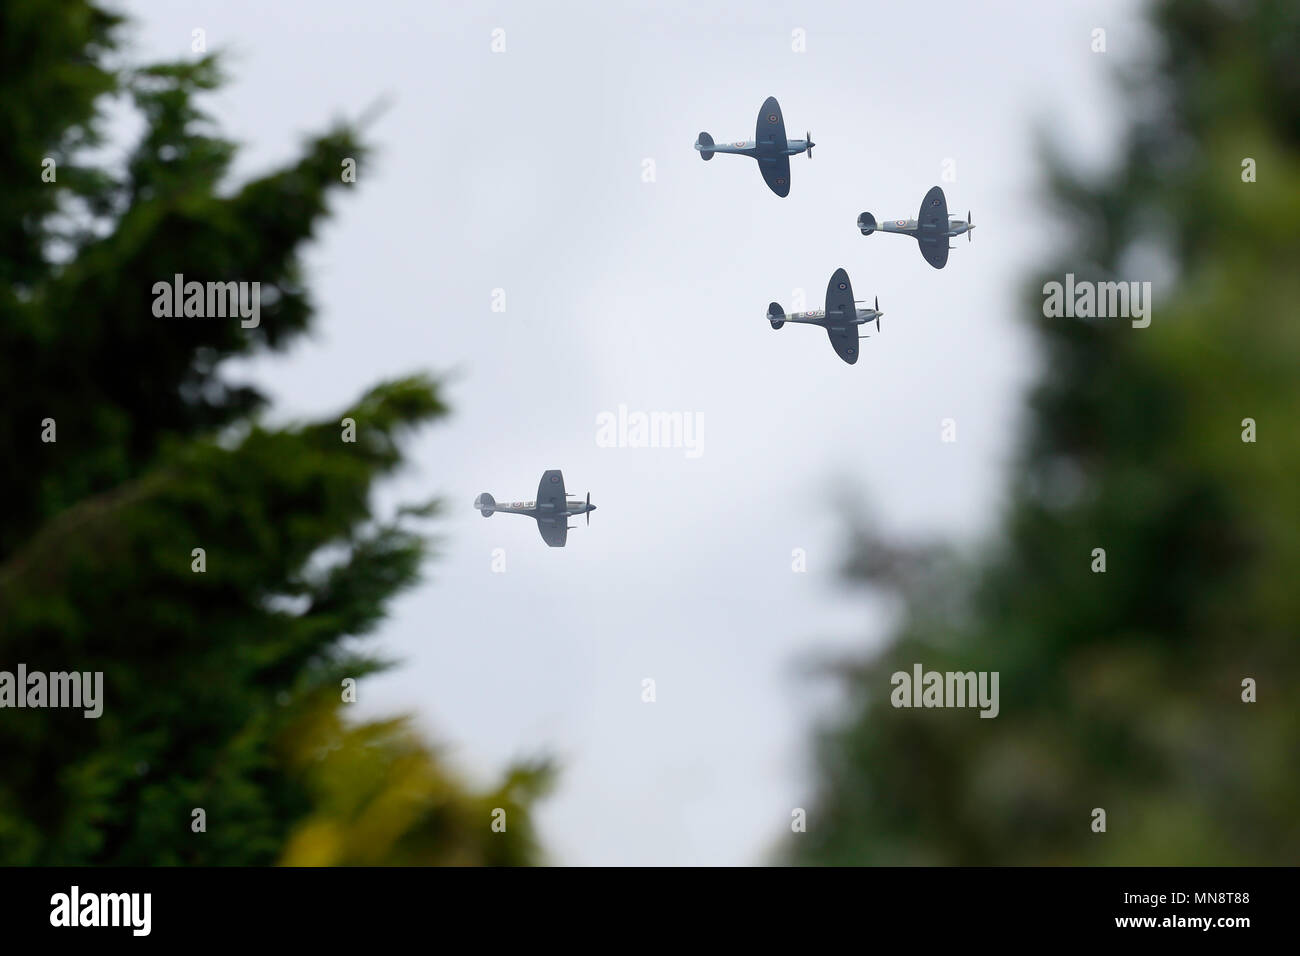 Battle of Britain Memorial Flypast, in what is believed to be the biggest memorial flight of its kind, 18 Spitfires and six Hurricanes will scramble from Biggin Hill Airport in Kent at 1pm, before splitting into three formations of eight aircraft. Biggin Hill, Kent. England. 18 August 2015--- Image by © Paul Cunningham - Stock Image